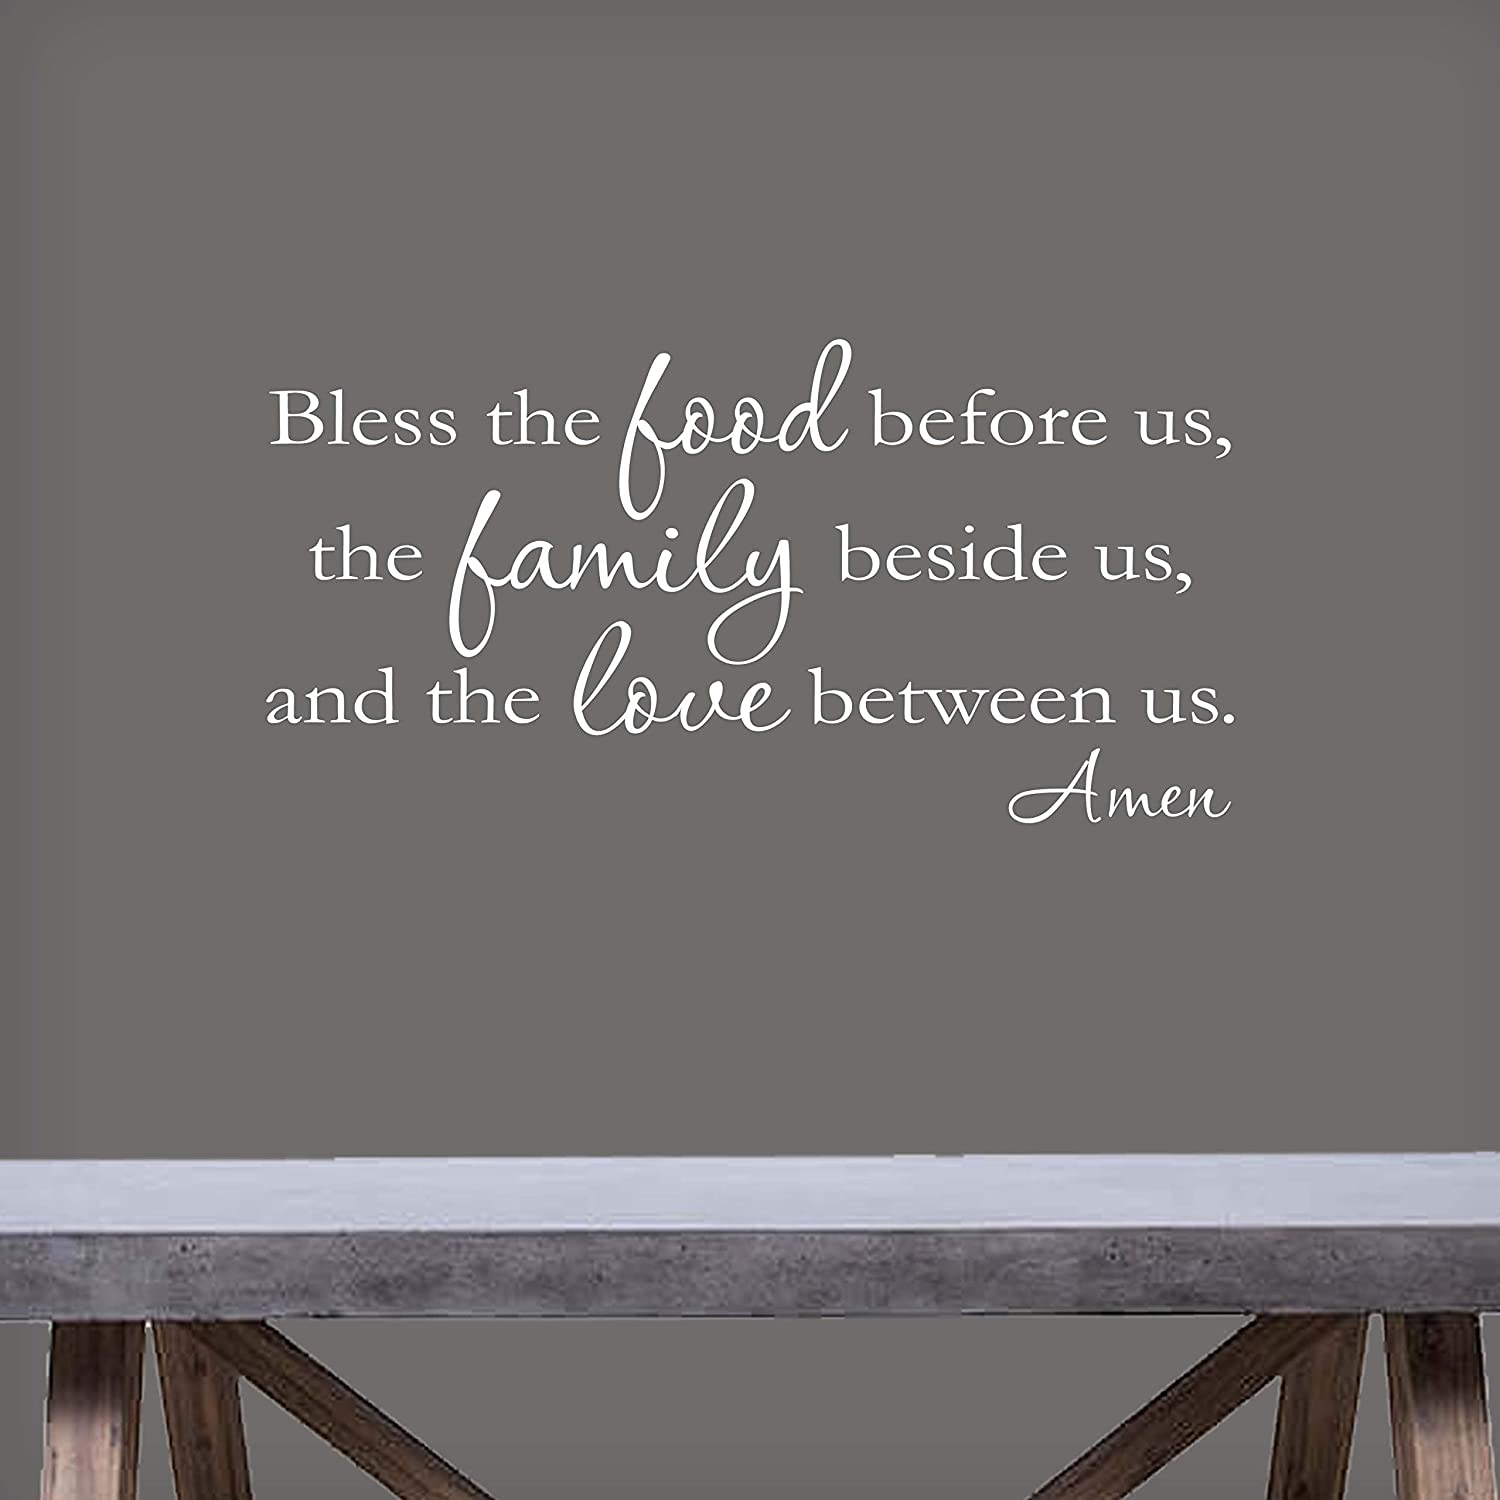 Bless The Food Before Us, The Family Beside Us, and The Love Between Us-22x11-White